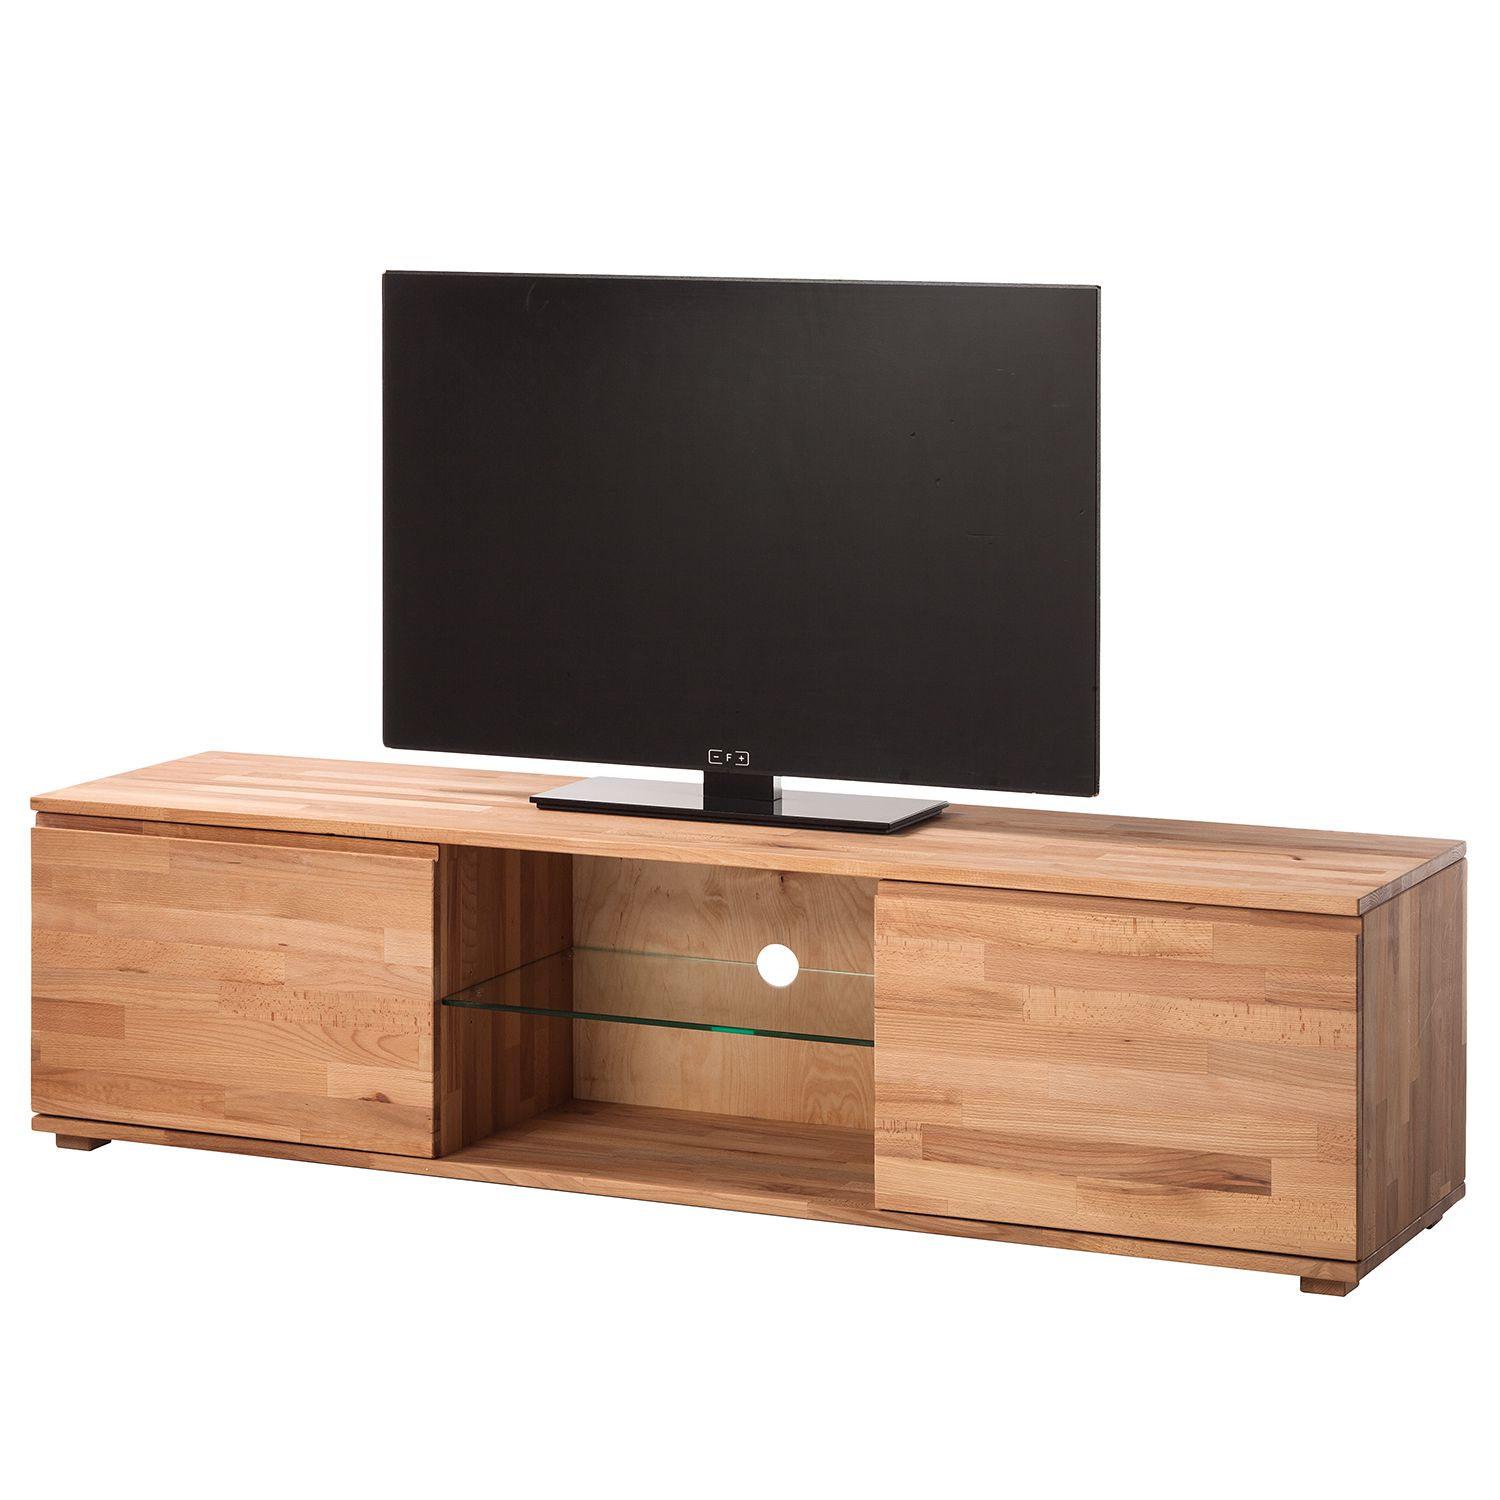 tv lowboards online kaufen m bel suchmaschine. Black Bedroom Furniture Sets. Home Design Ideas